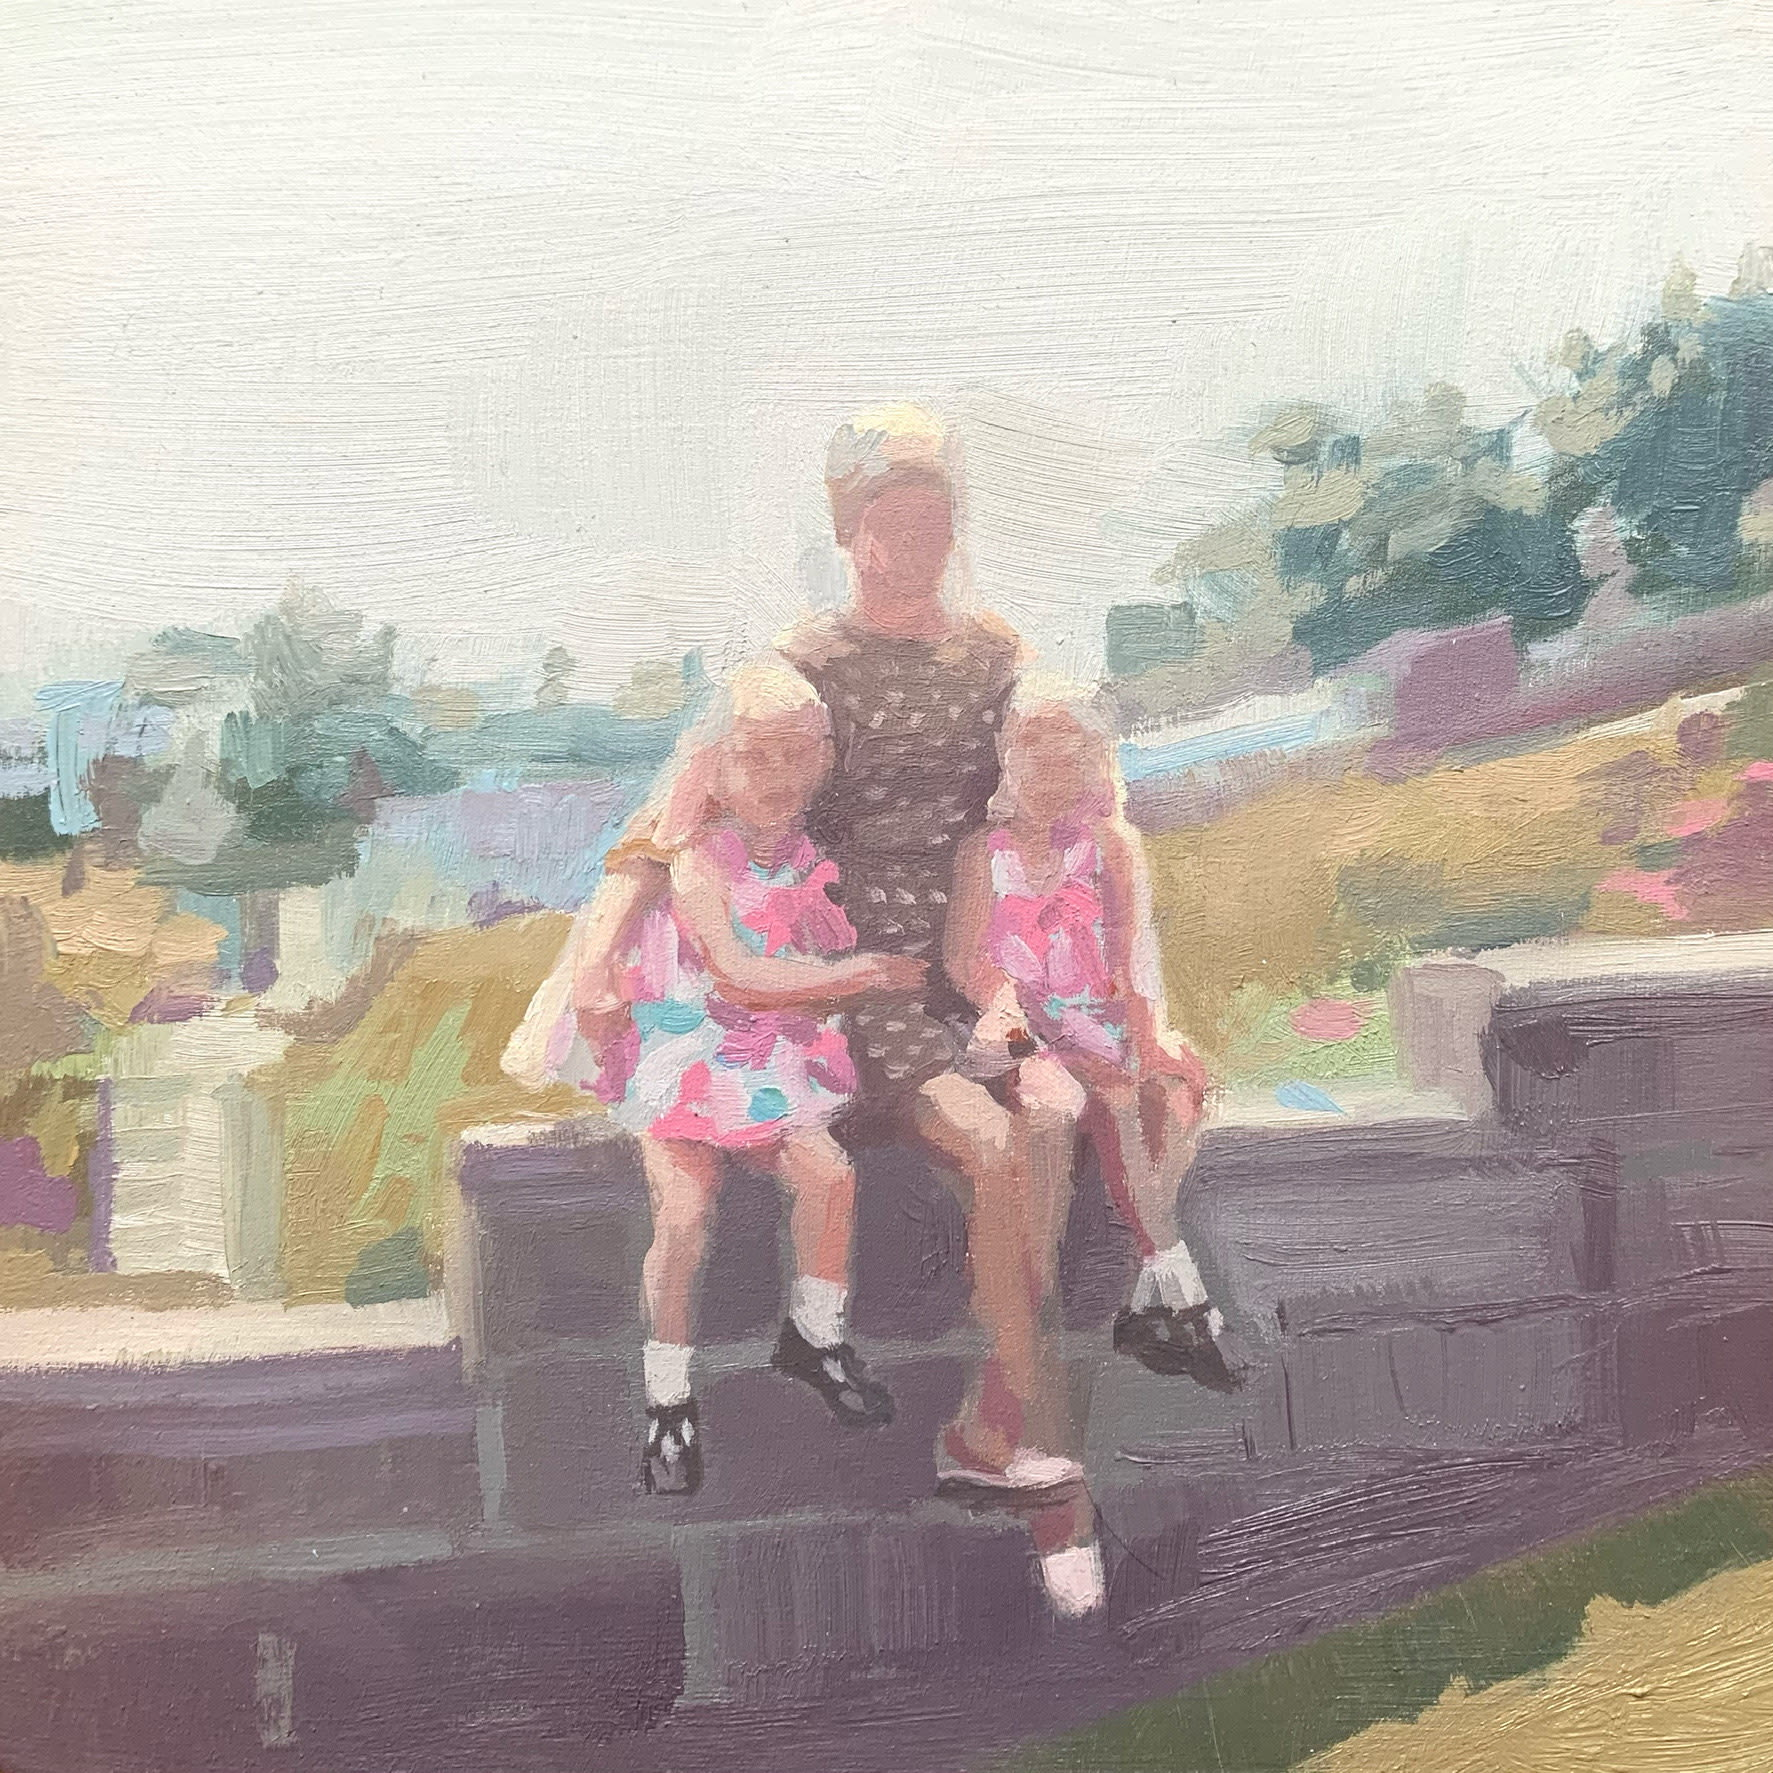 "<span class=""link fancybox-details-link""><a href=""/artists/89-kirsten-tradowsky/works/1306-kirsten-tradowsky-outing-with-the-twins/"">View Detail Page</a></span><div class=""artist""><strong>Kirsten Tradowsky</strong></div> <div class=""title""><em>Outing with the Twins</em></div> <div class=""medium"">Oil on panel</div> <div class=""dimensions"">5 x 5 inches</div>"